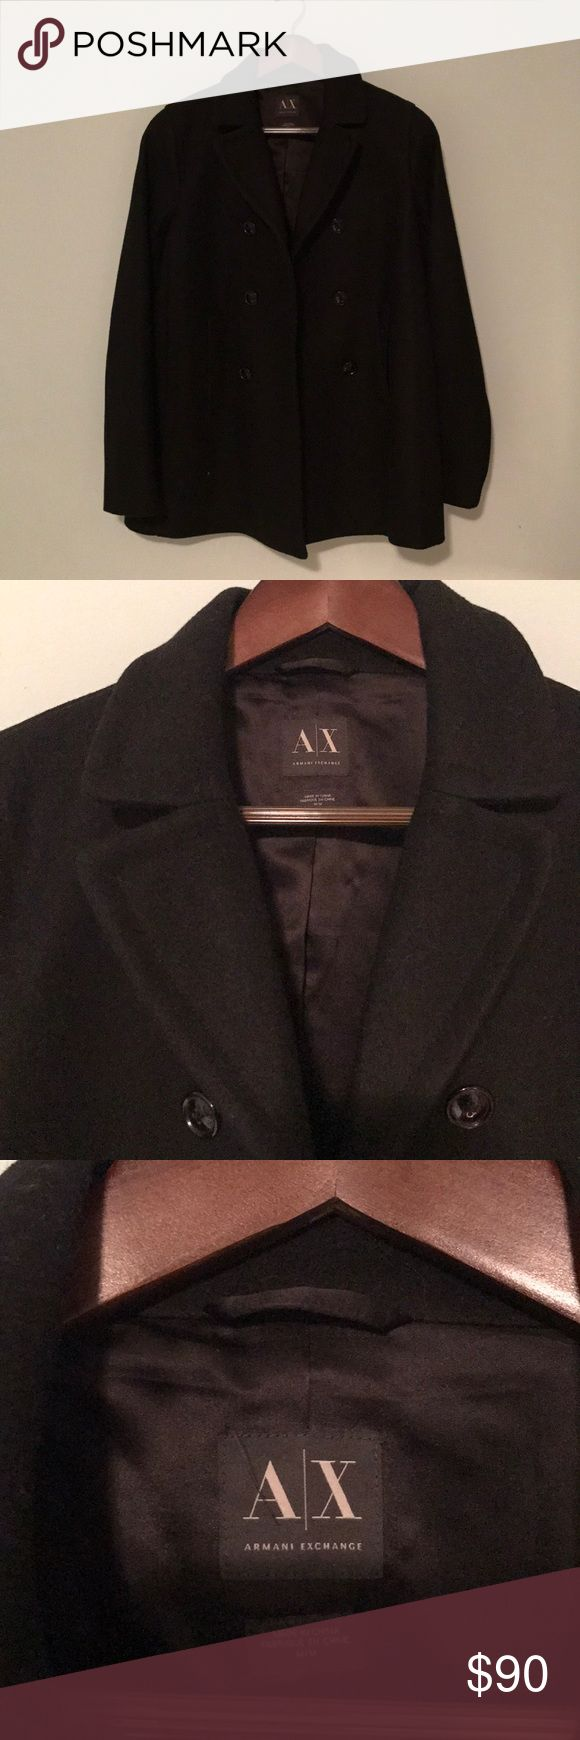 Armani Exchange coat Used it about 3 times. Looks brand new. Has no tags A/X Armani Exchange Jackets & Coats Utility Jackets